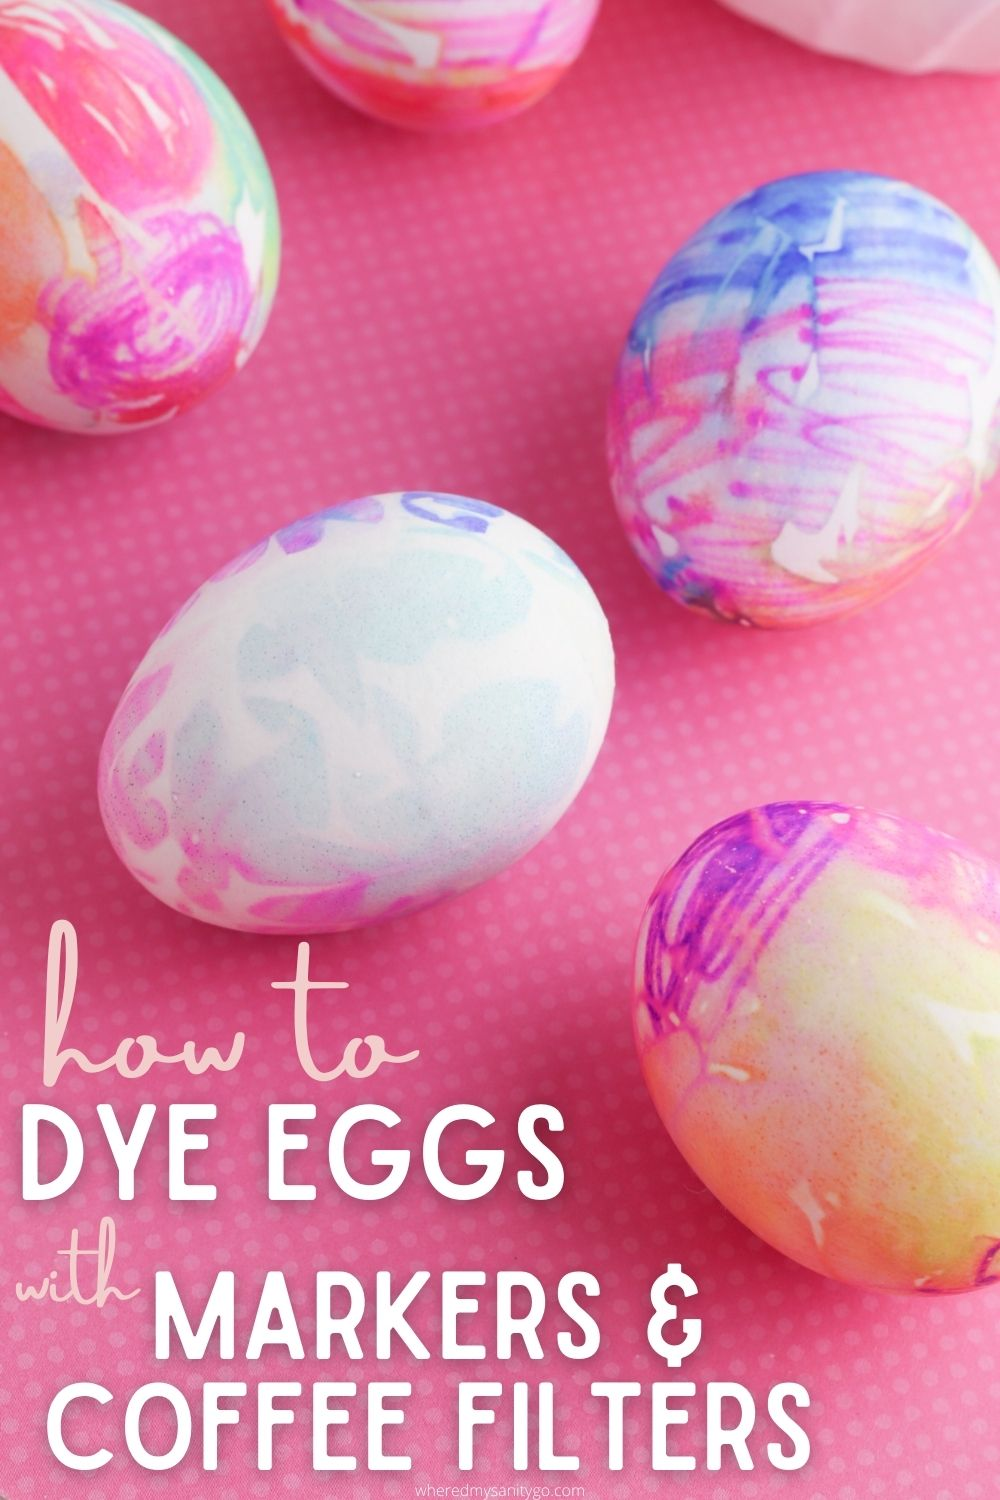 How To Dye Eggs with Coffee Filters and Markers